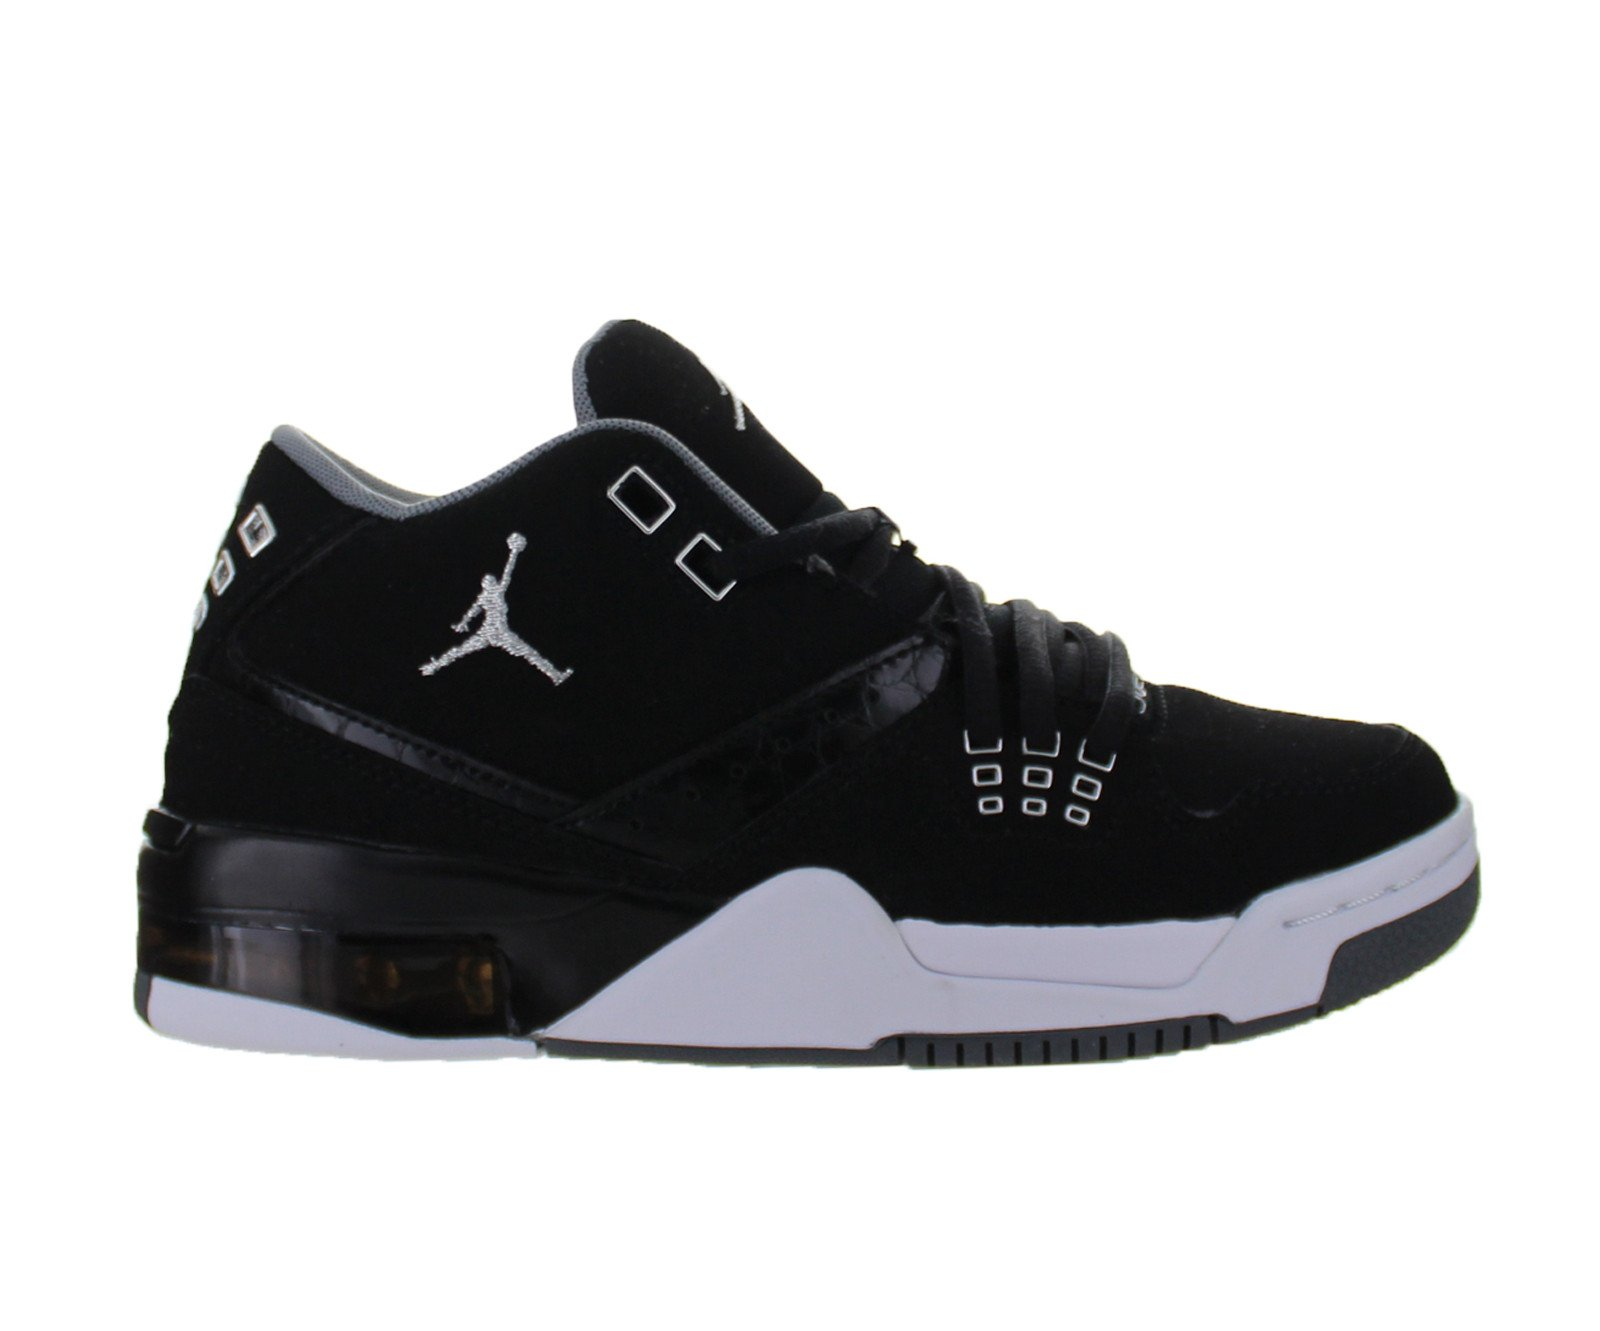 2305cb4f15ba66 ... switzerland air jordan flight 23 gs black chrome white cool grey 317821  022 walmart 6d0de d050b